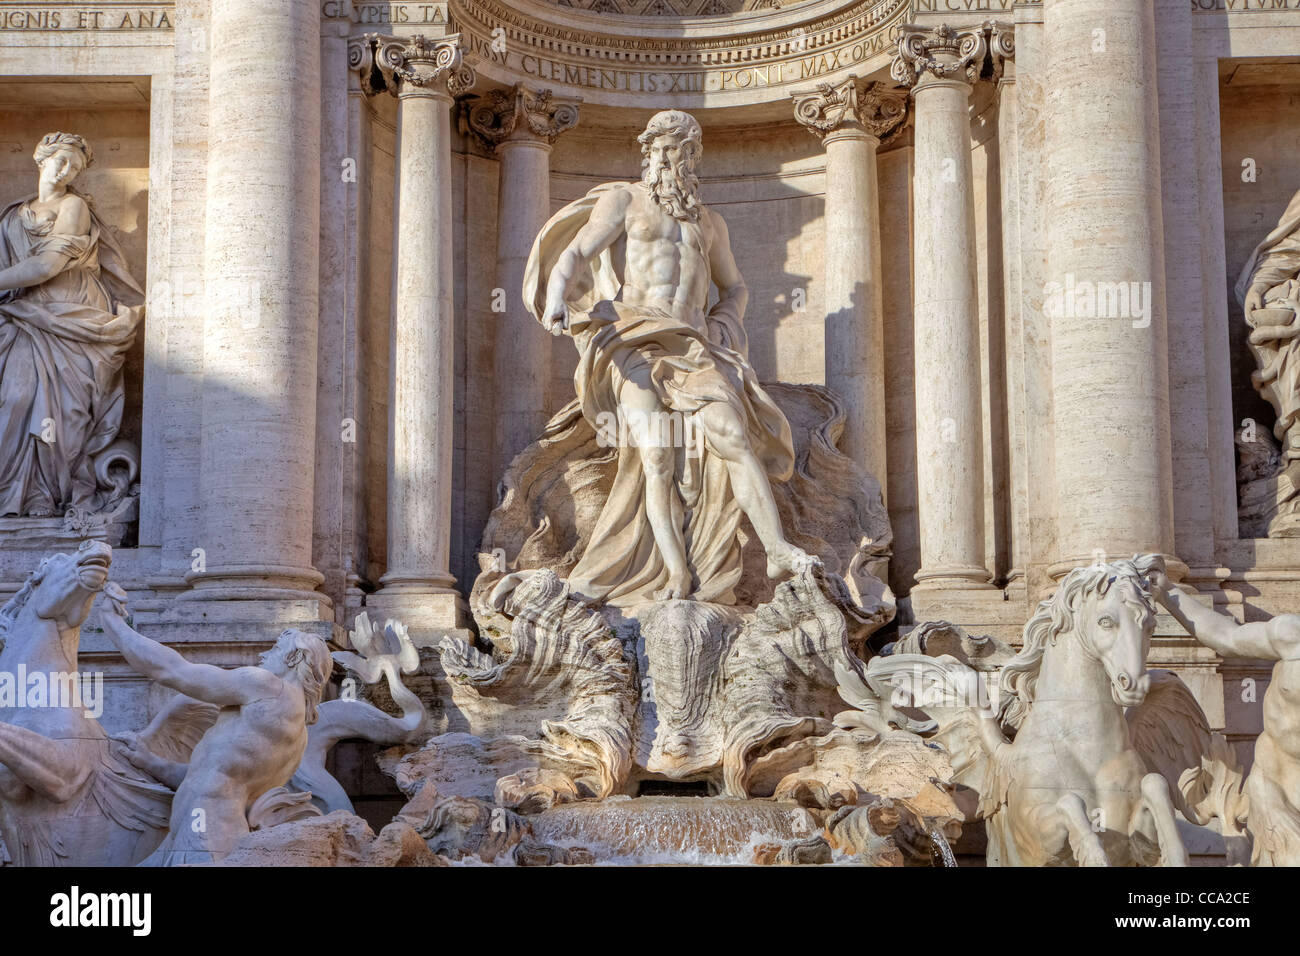 Trevi-Brunnen in Rom Stockbild